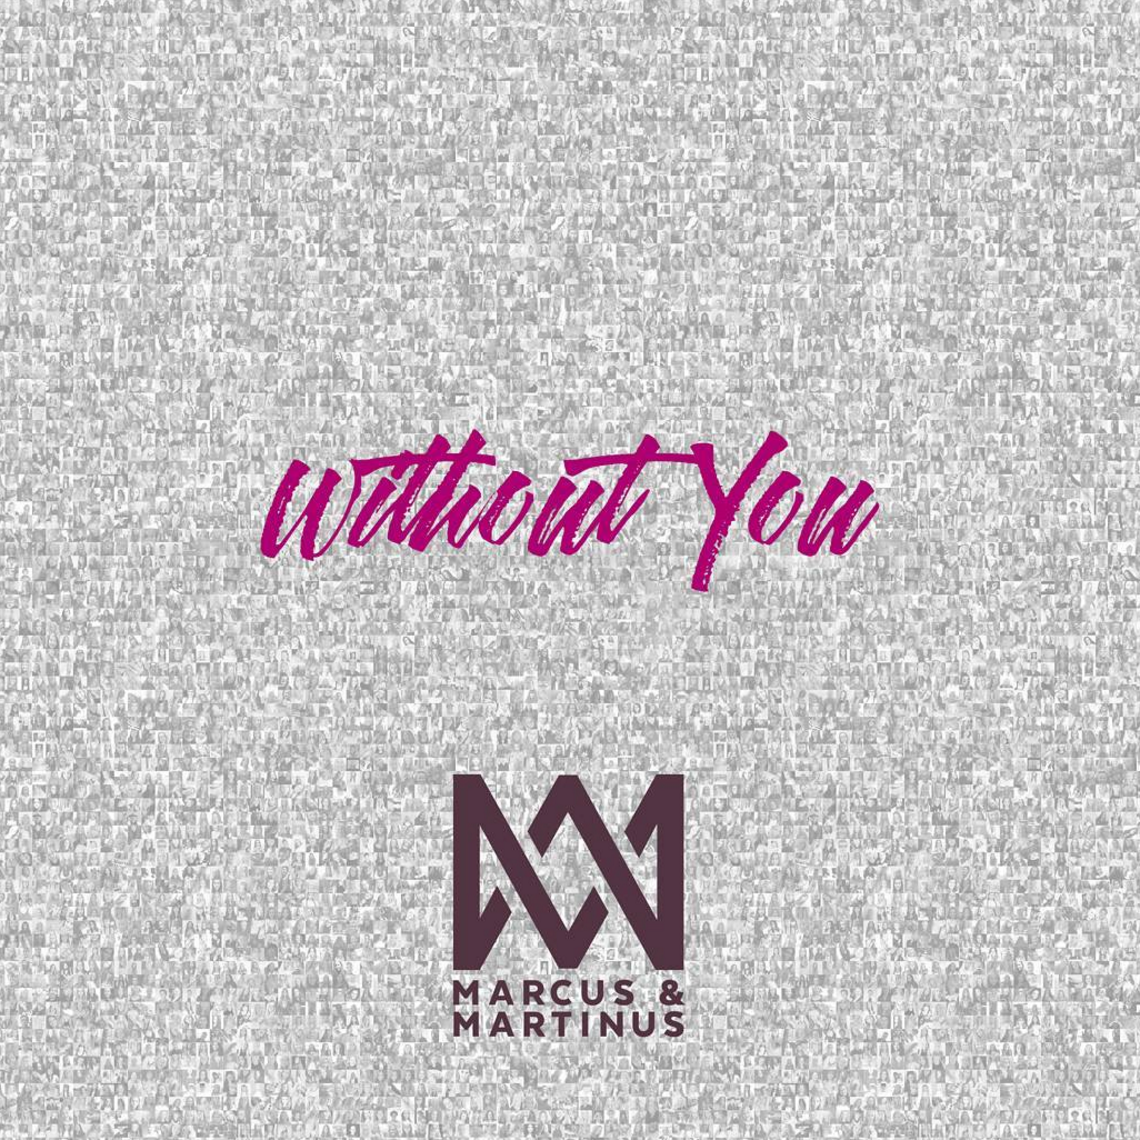 Artist: Marcus & Martinus    Song: Without You    Album: Together